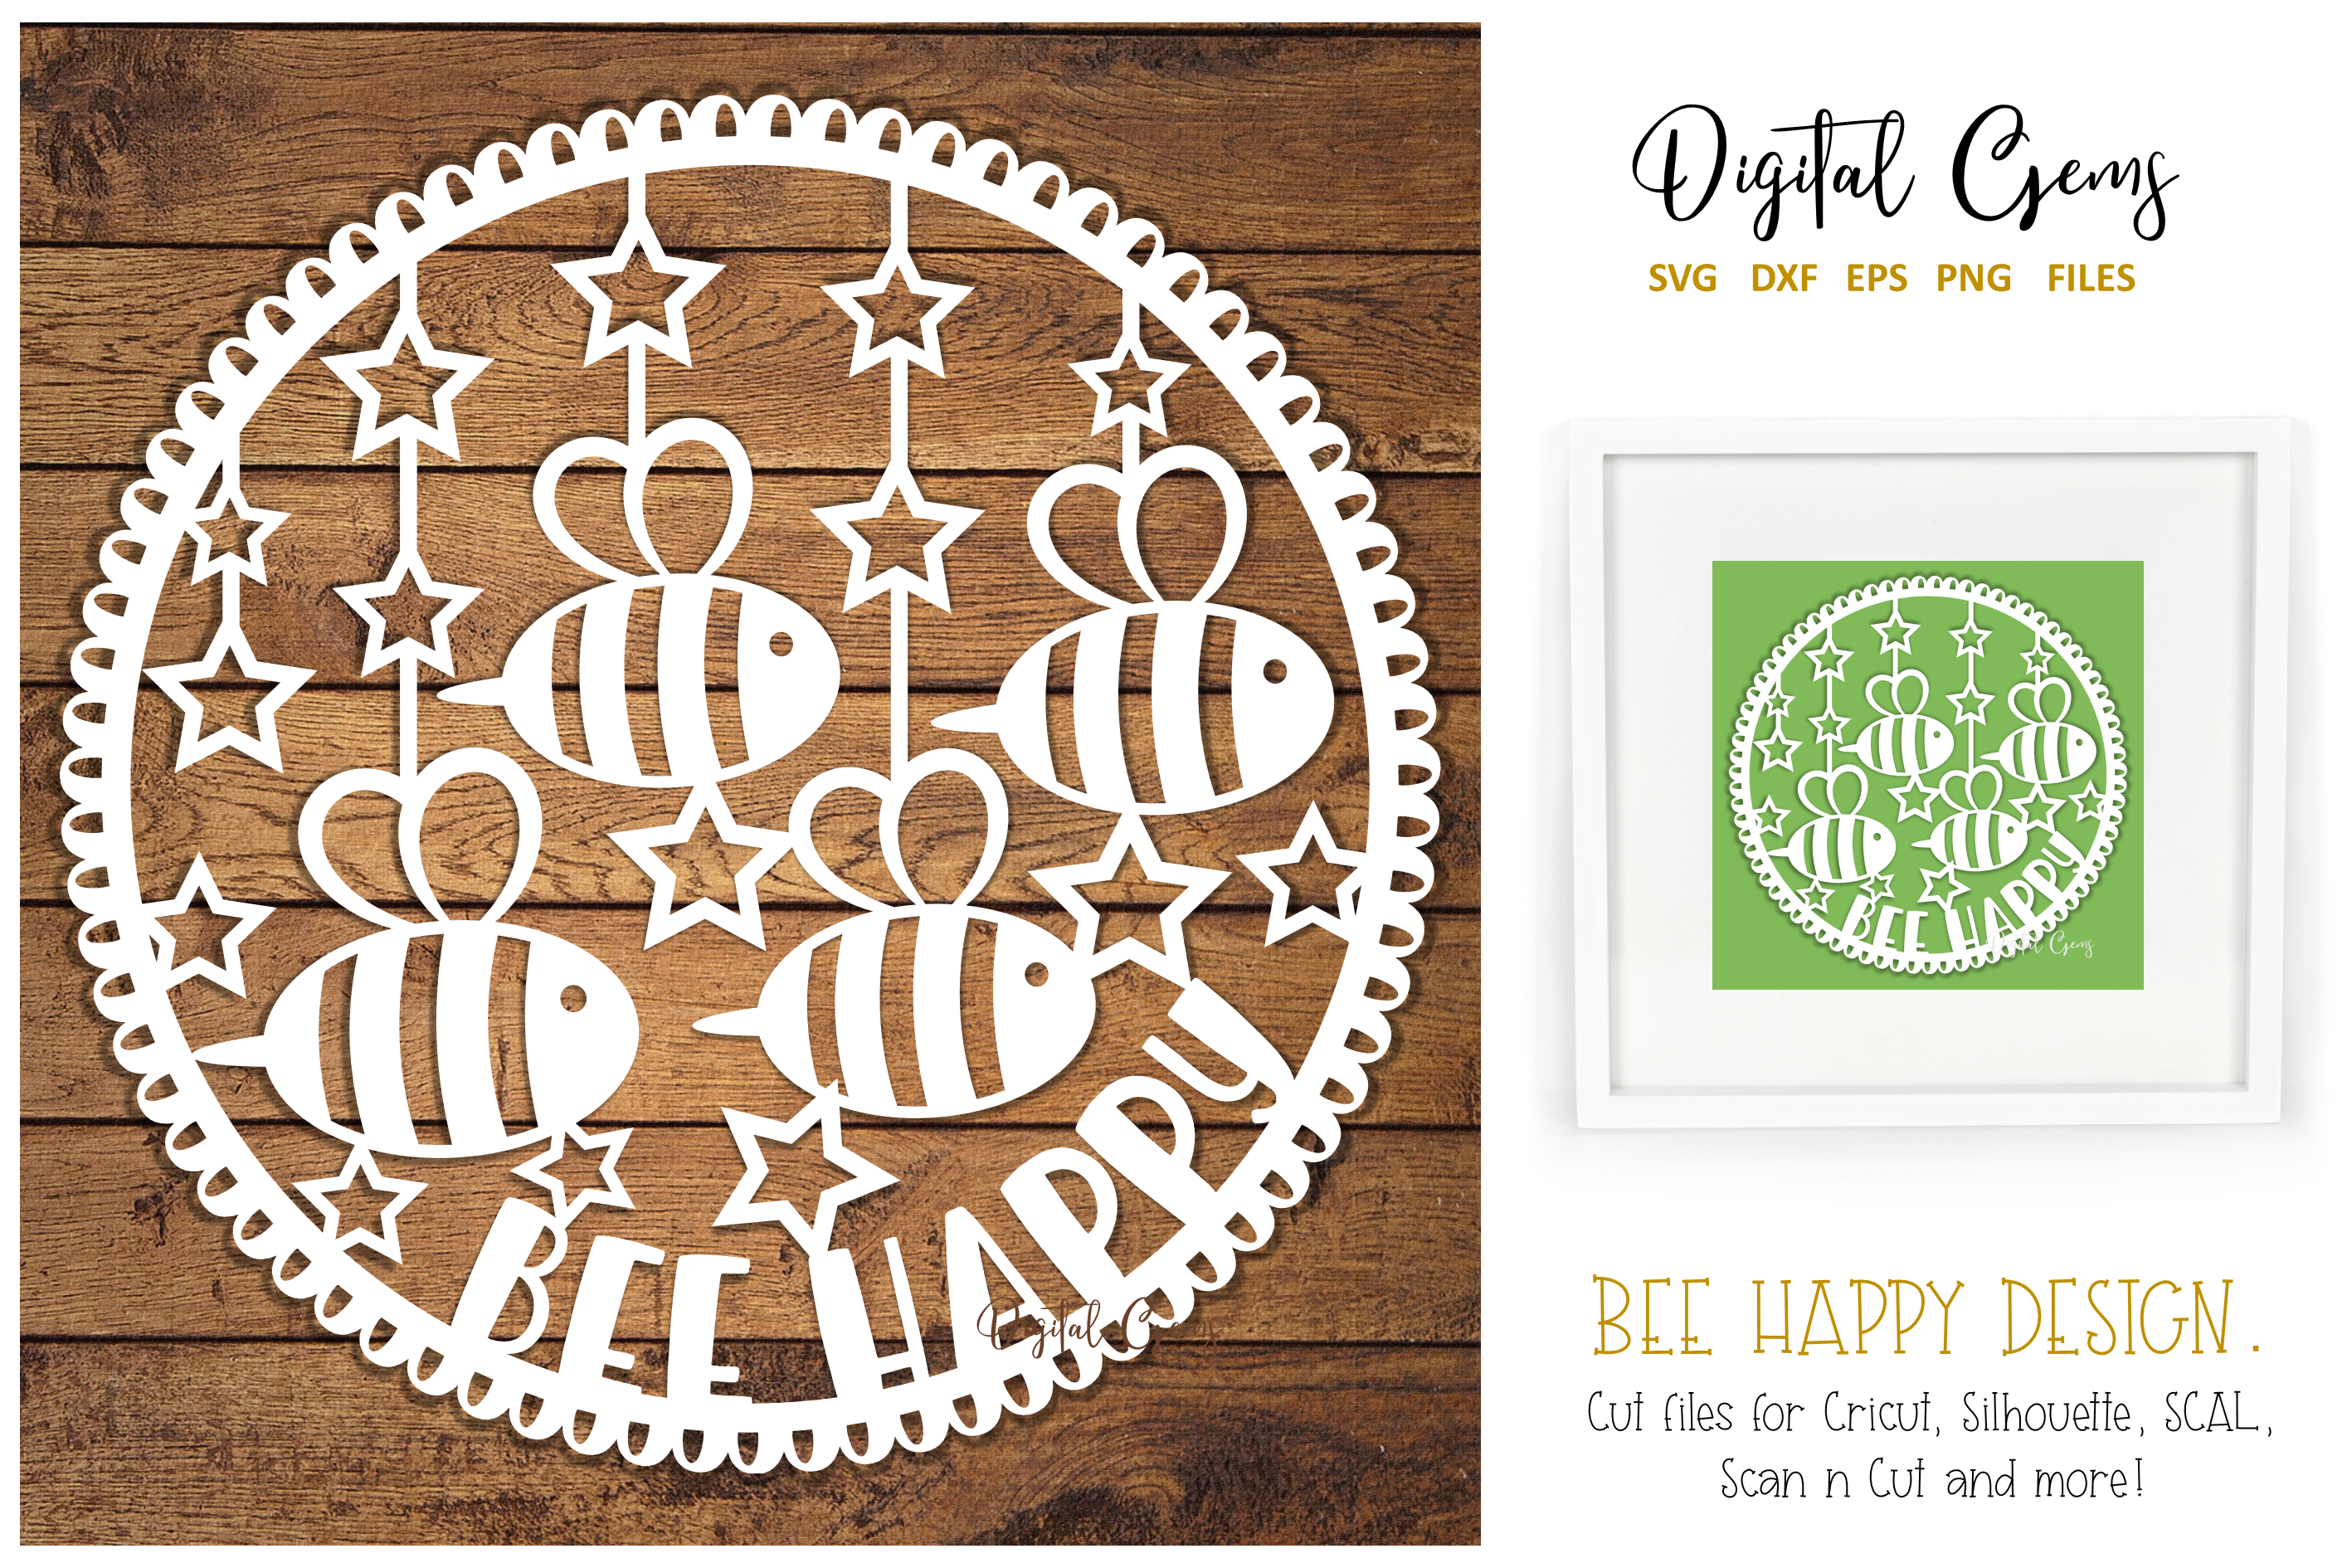 Bee Happy Paper Cut Design By Digital Gems Thehungryjpeg Com